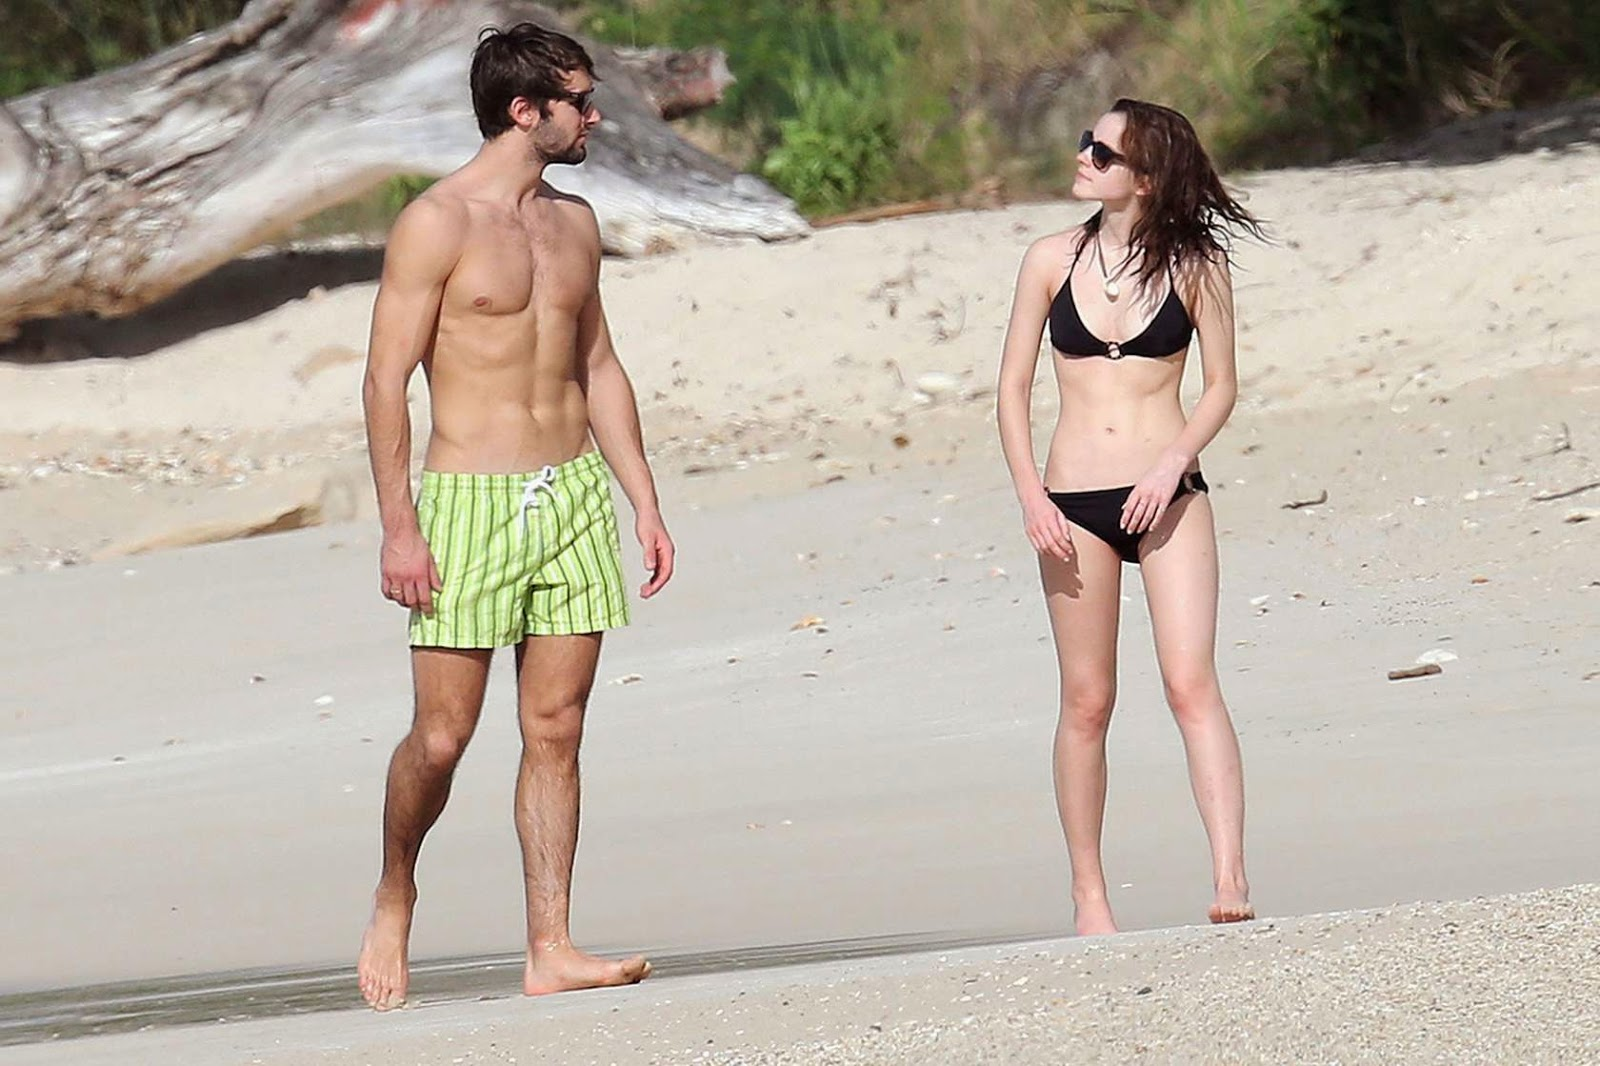 The original photo of Emma Watson goes with the adulation of heart, Matt Janney. This photo was taken on the beach. their leisure time while dating.